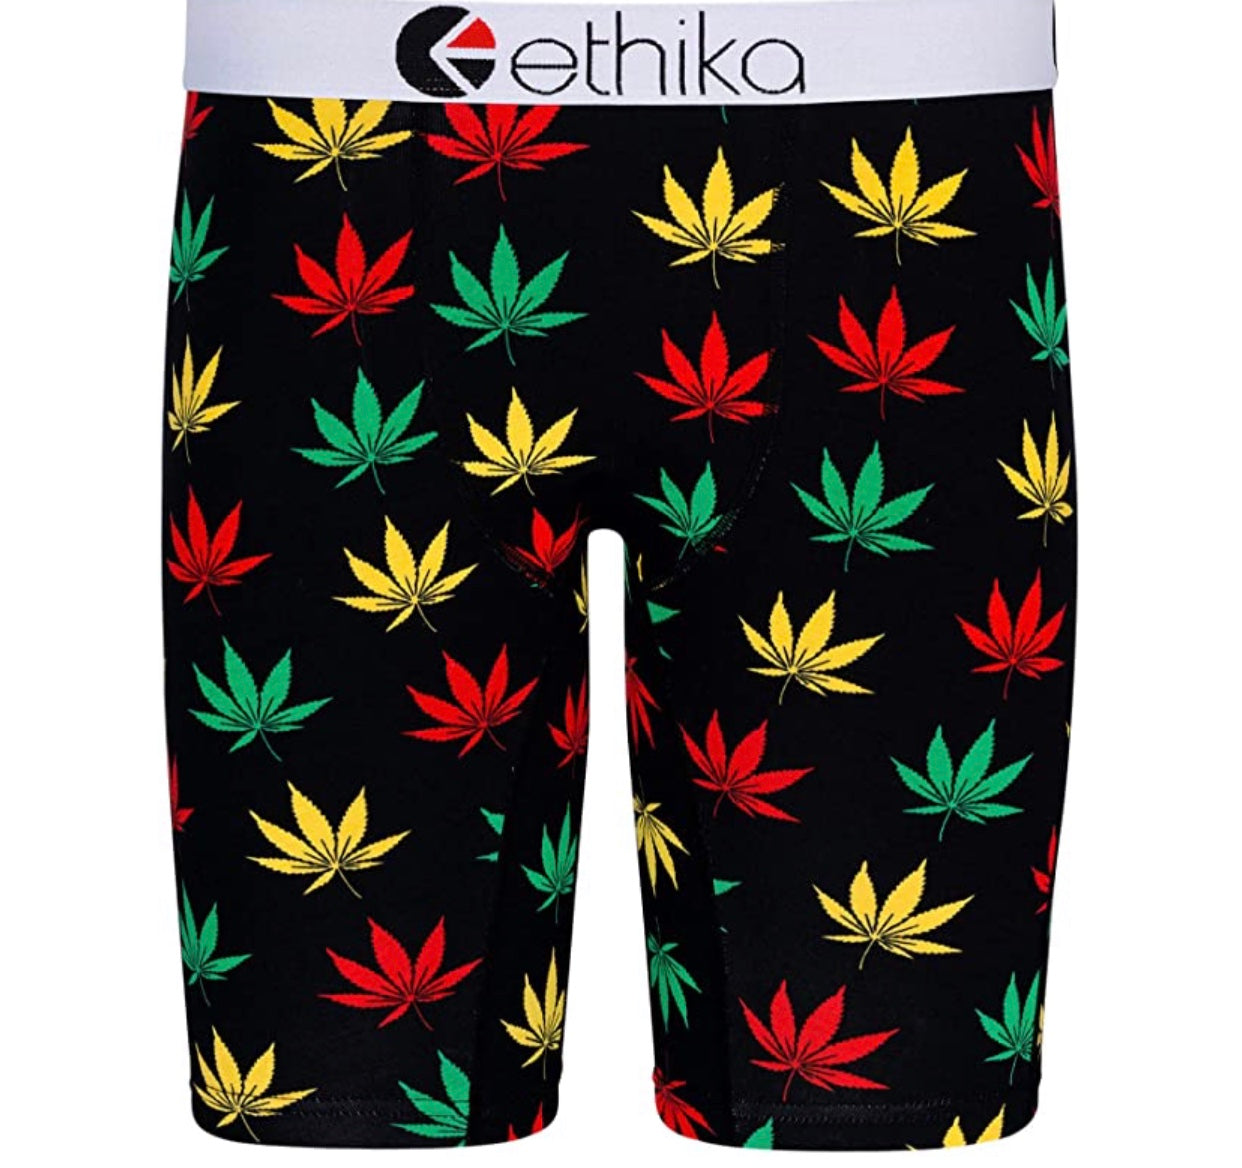 Men's Ethika Underwear's